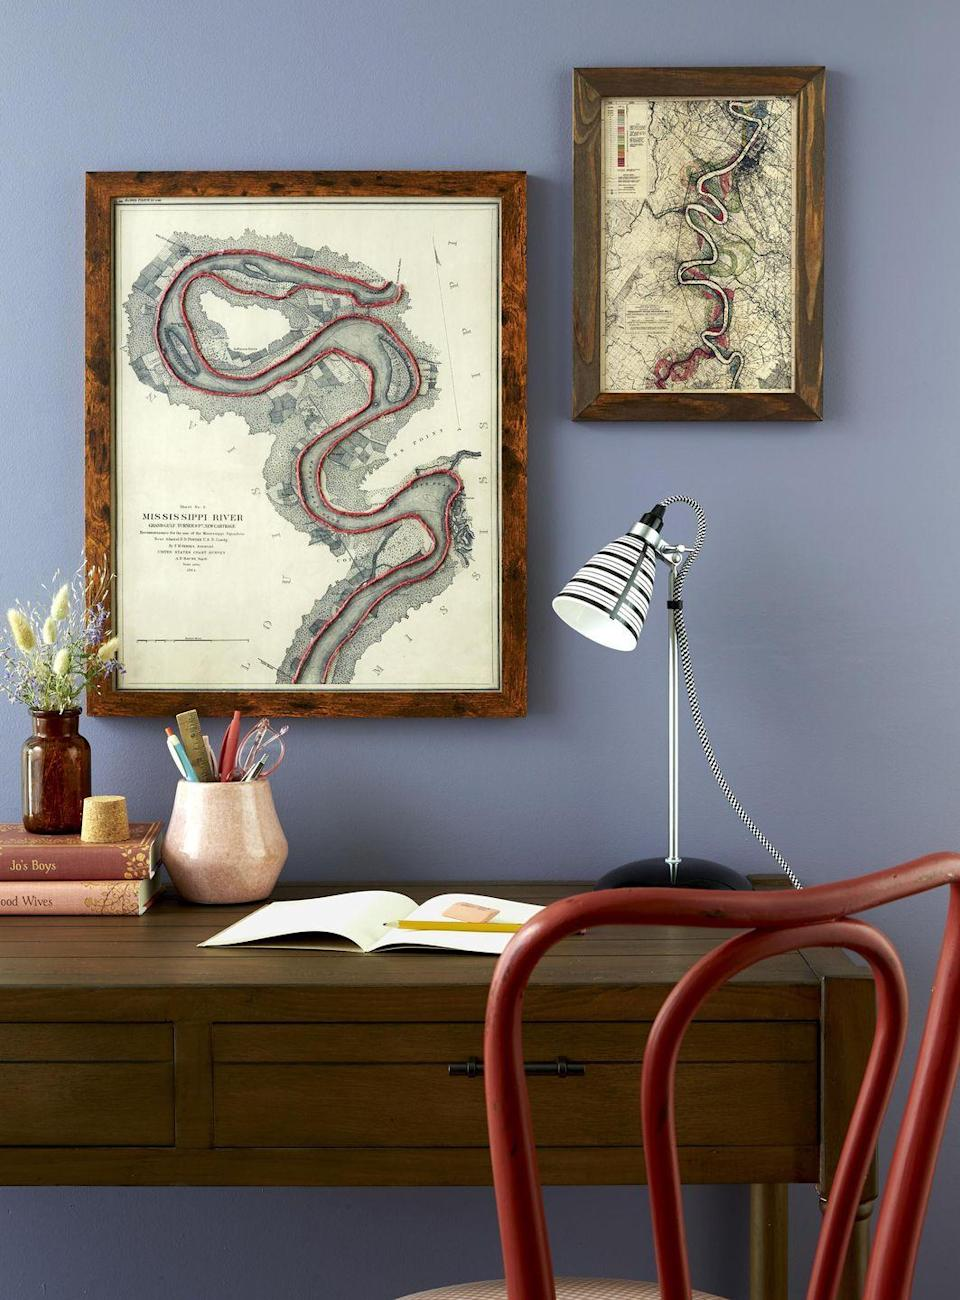 <p>Memorialize a vacation, hiking excursion, rowing adventure, or road trip by outlining the route traversed with ribbon or twine on a new or vintage map. Hold both options in place on the map with hot-glue.</p>